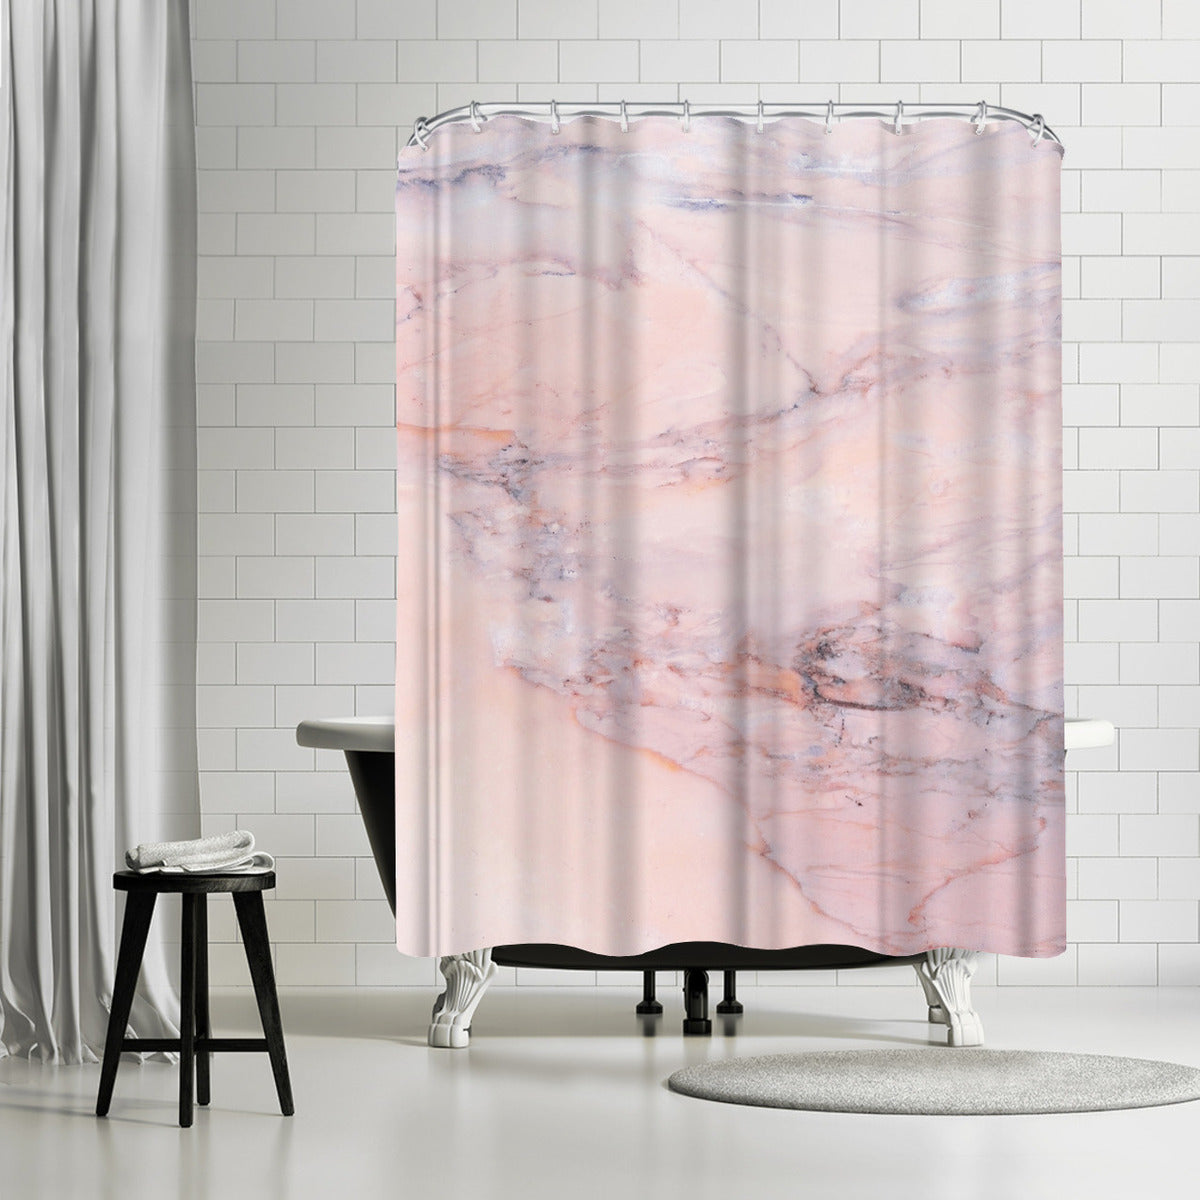 Pink Marble by Emanuela Carratoni Shower Curtain - Shower Curtain - Americanflat